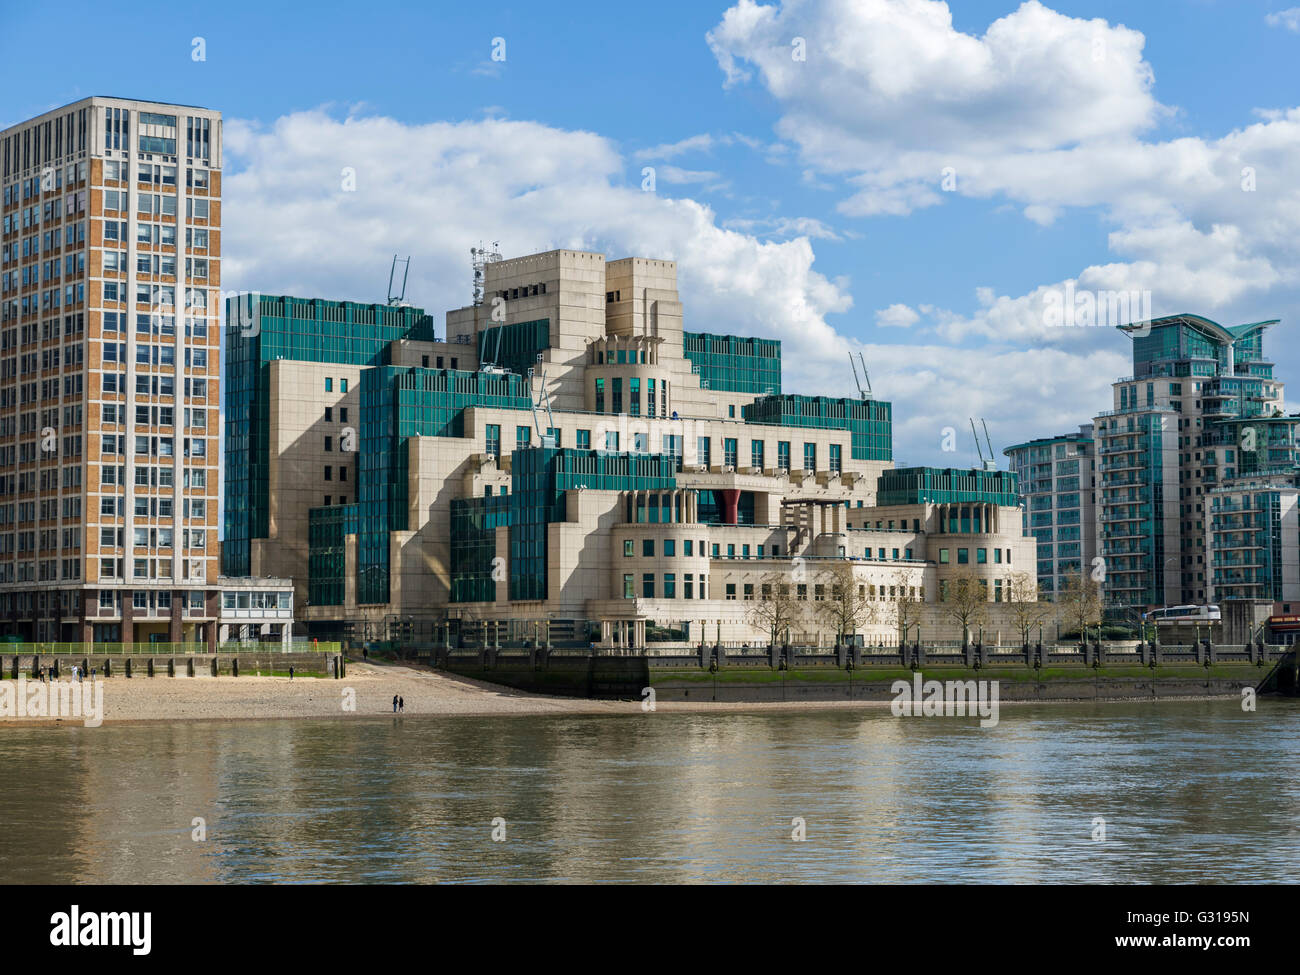 The SIS Building, headquarters of MI6, Vauxhall Cross, London, England, UK - Stock Image